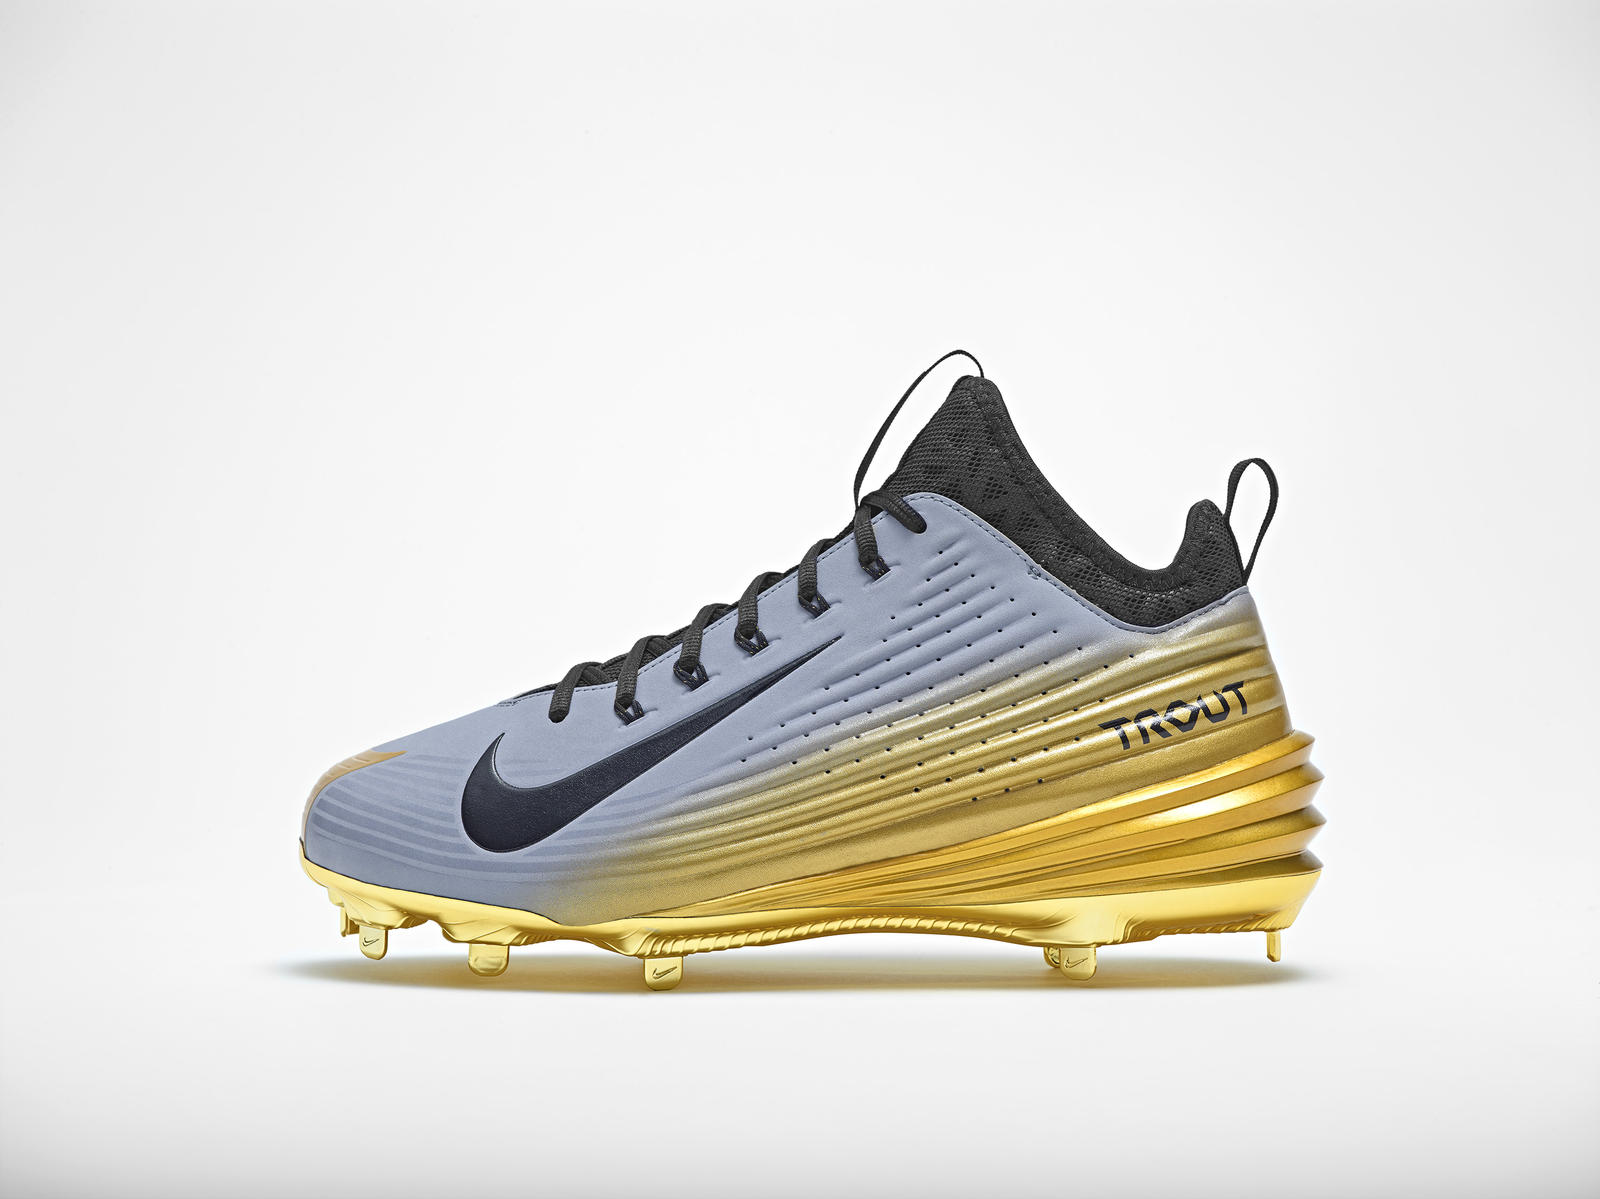 nike lunar vapor trout pack honors mike trout�s first mvp